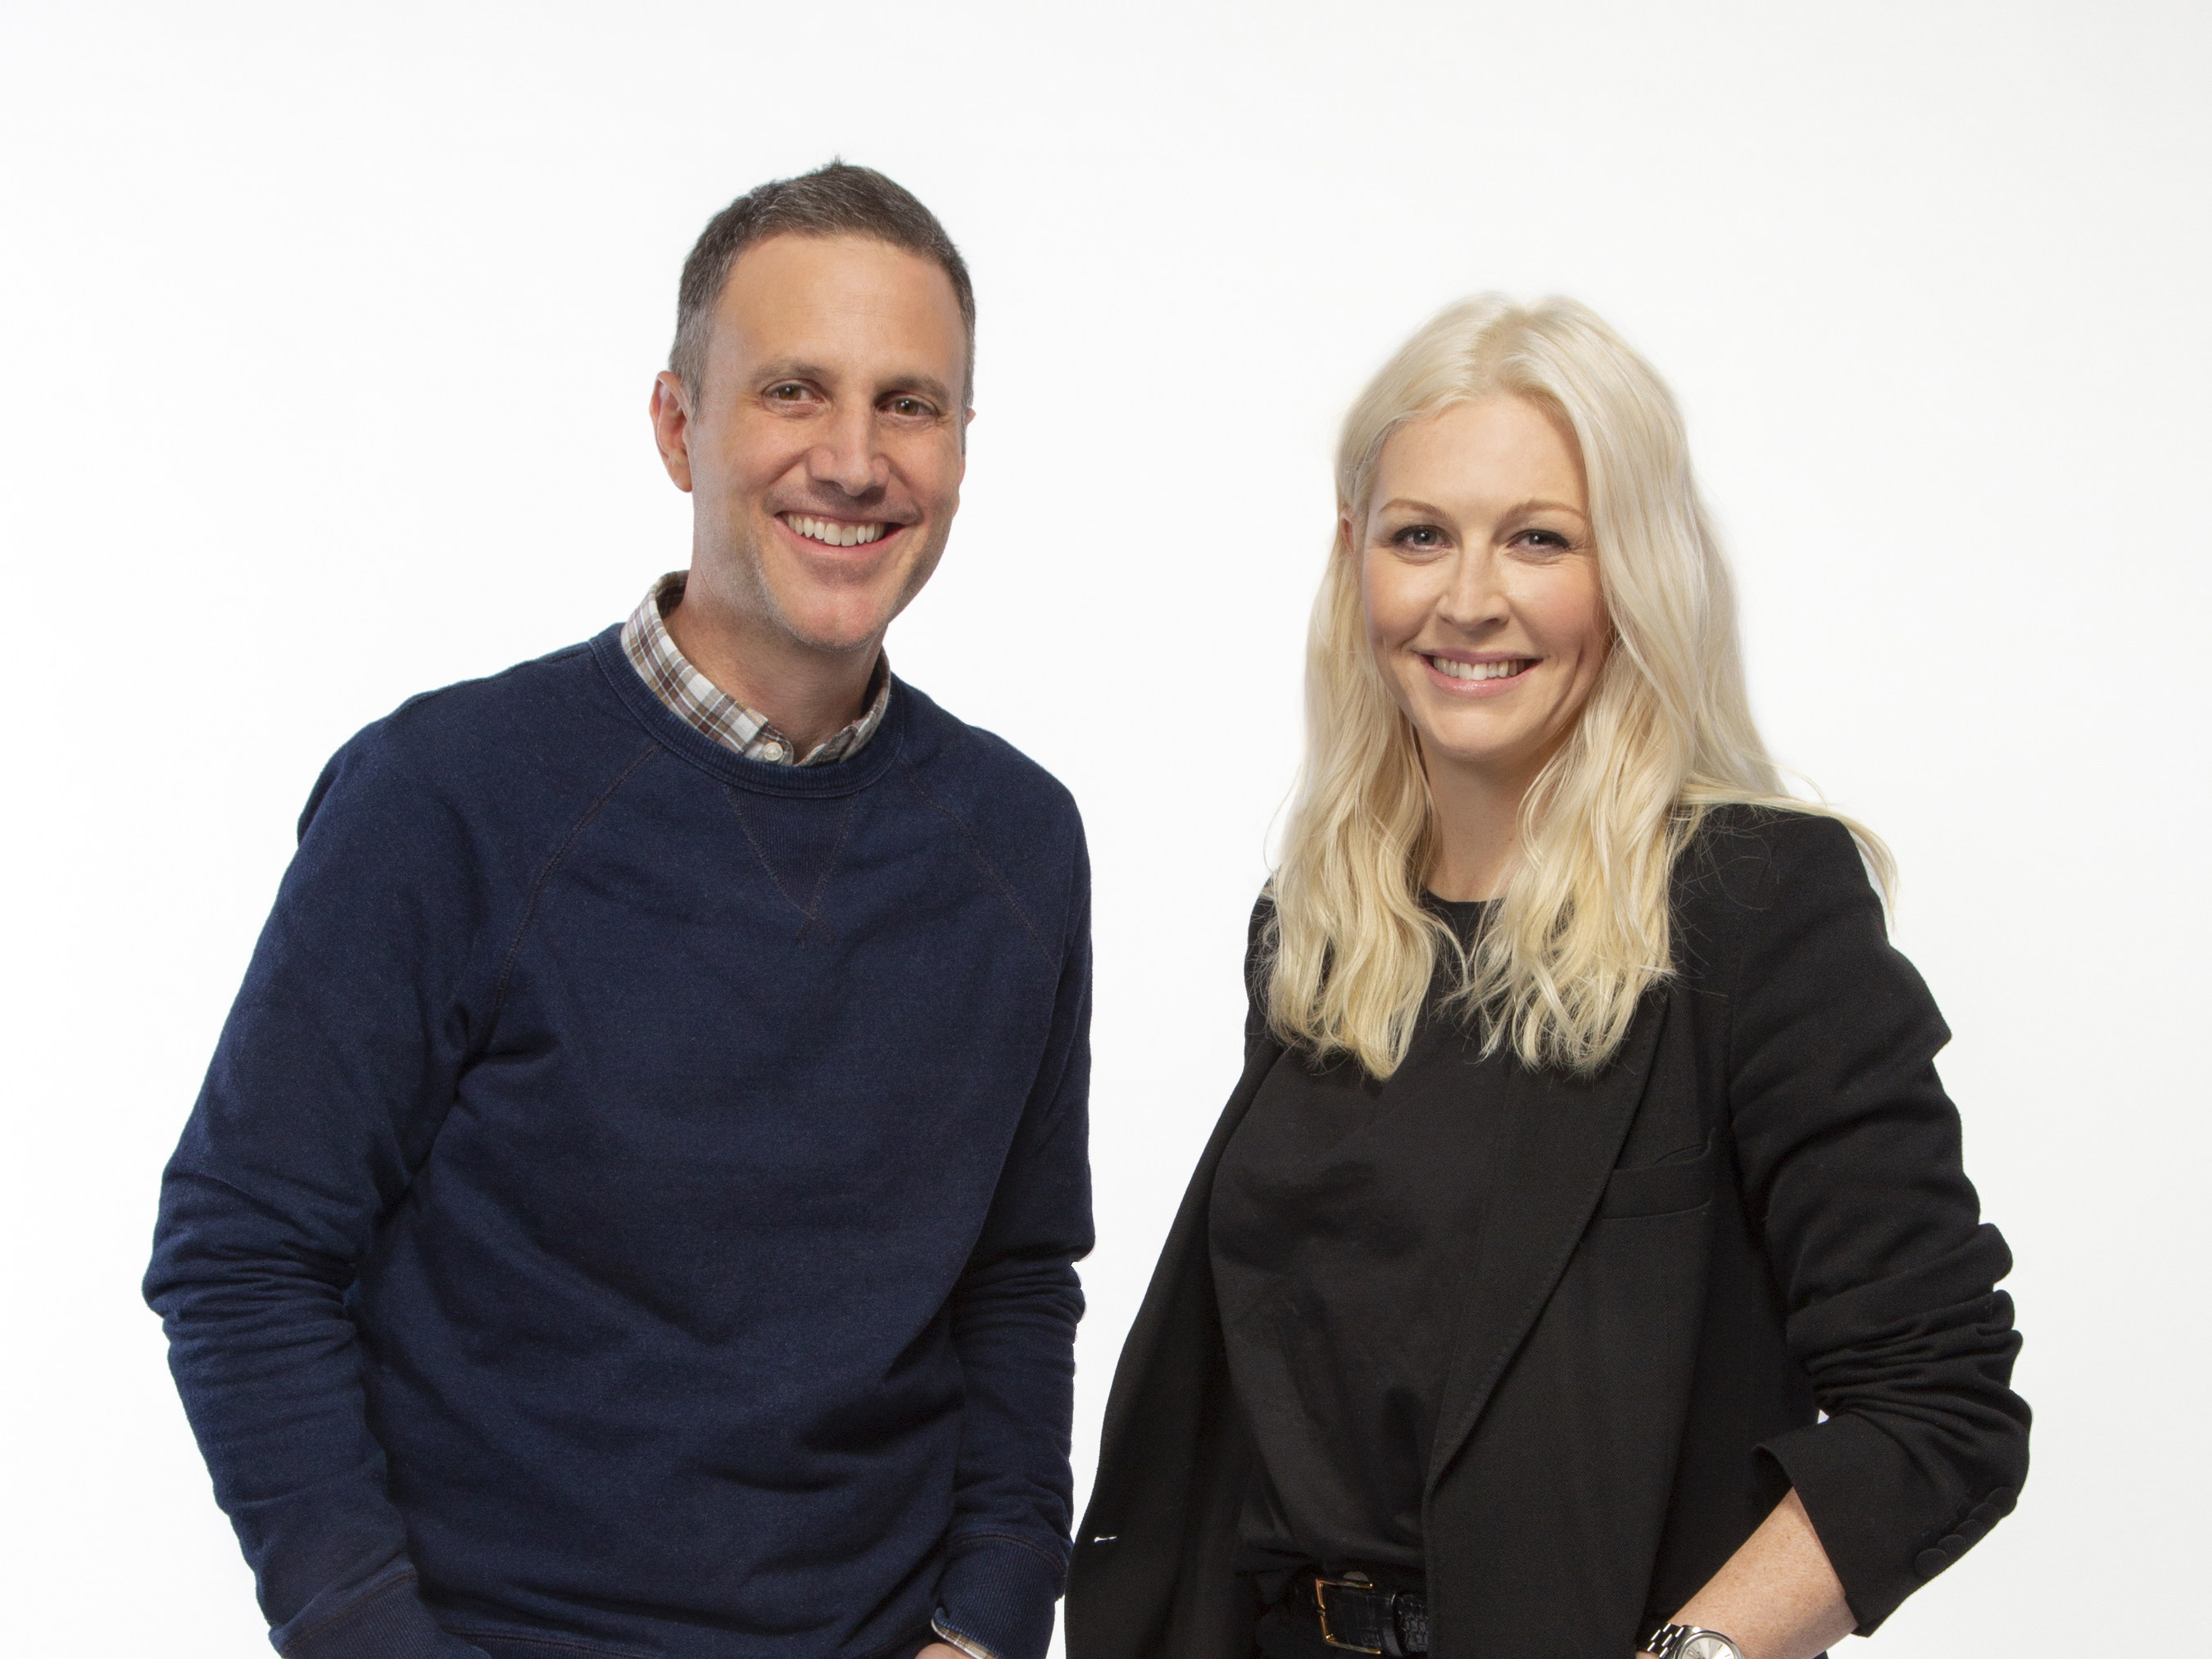 Aussie expat Justine Armour departs 72andSunny NYC for Chief Creative Officer role at Grey NYC